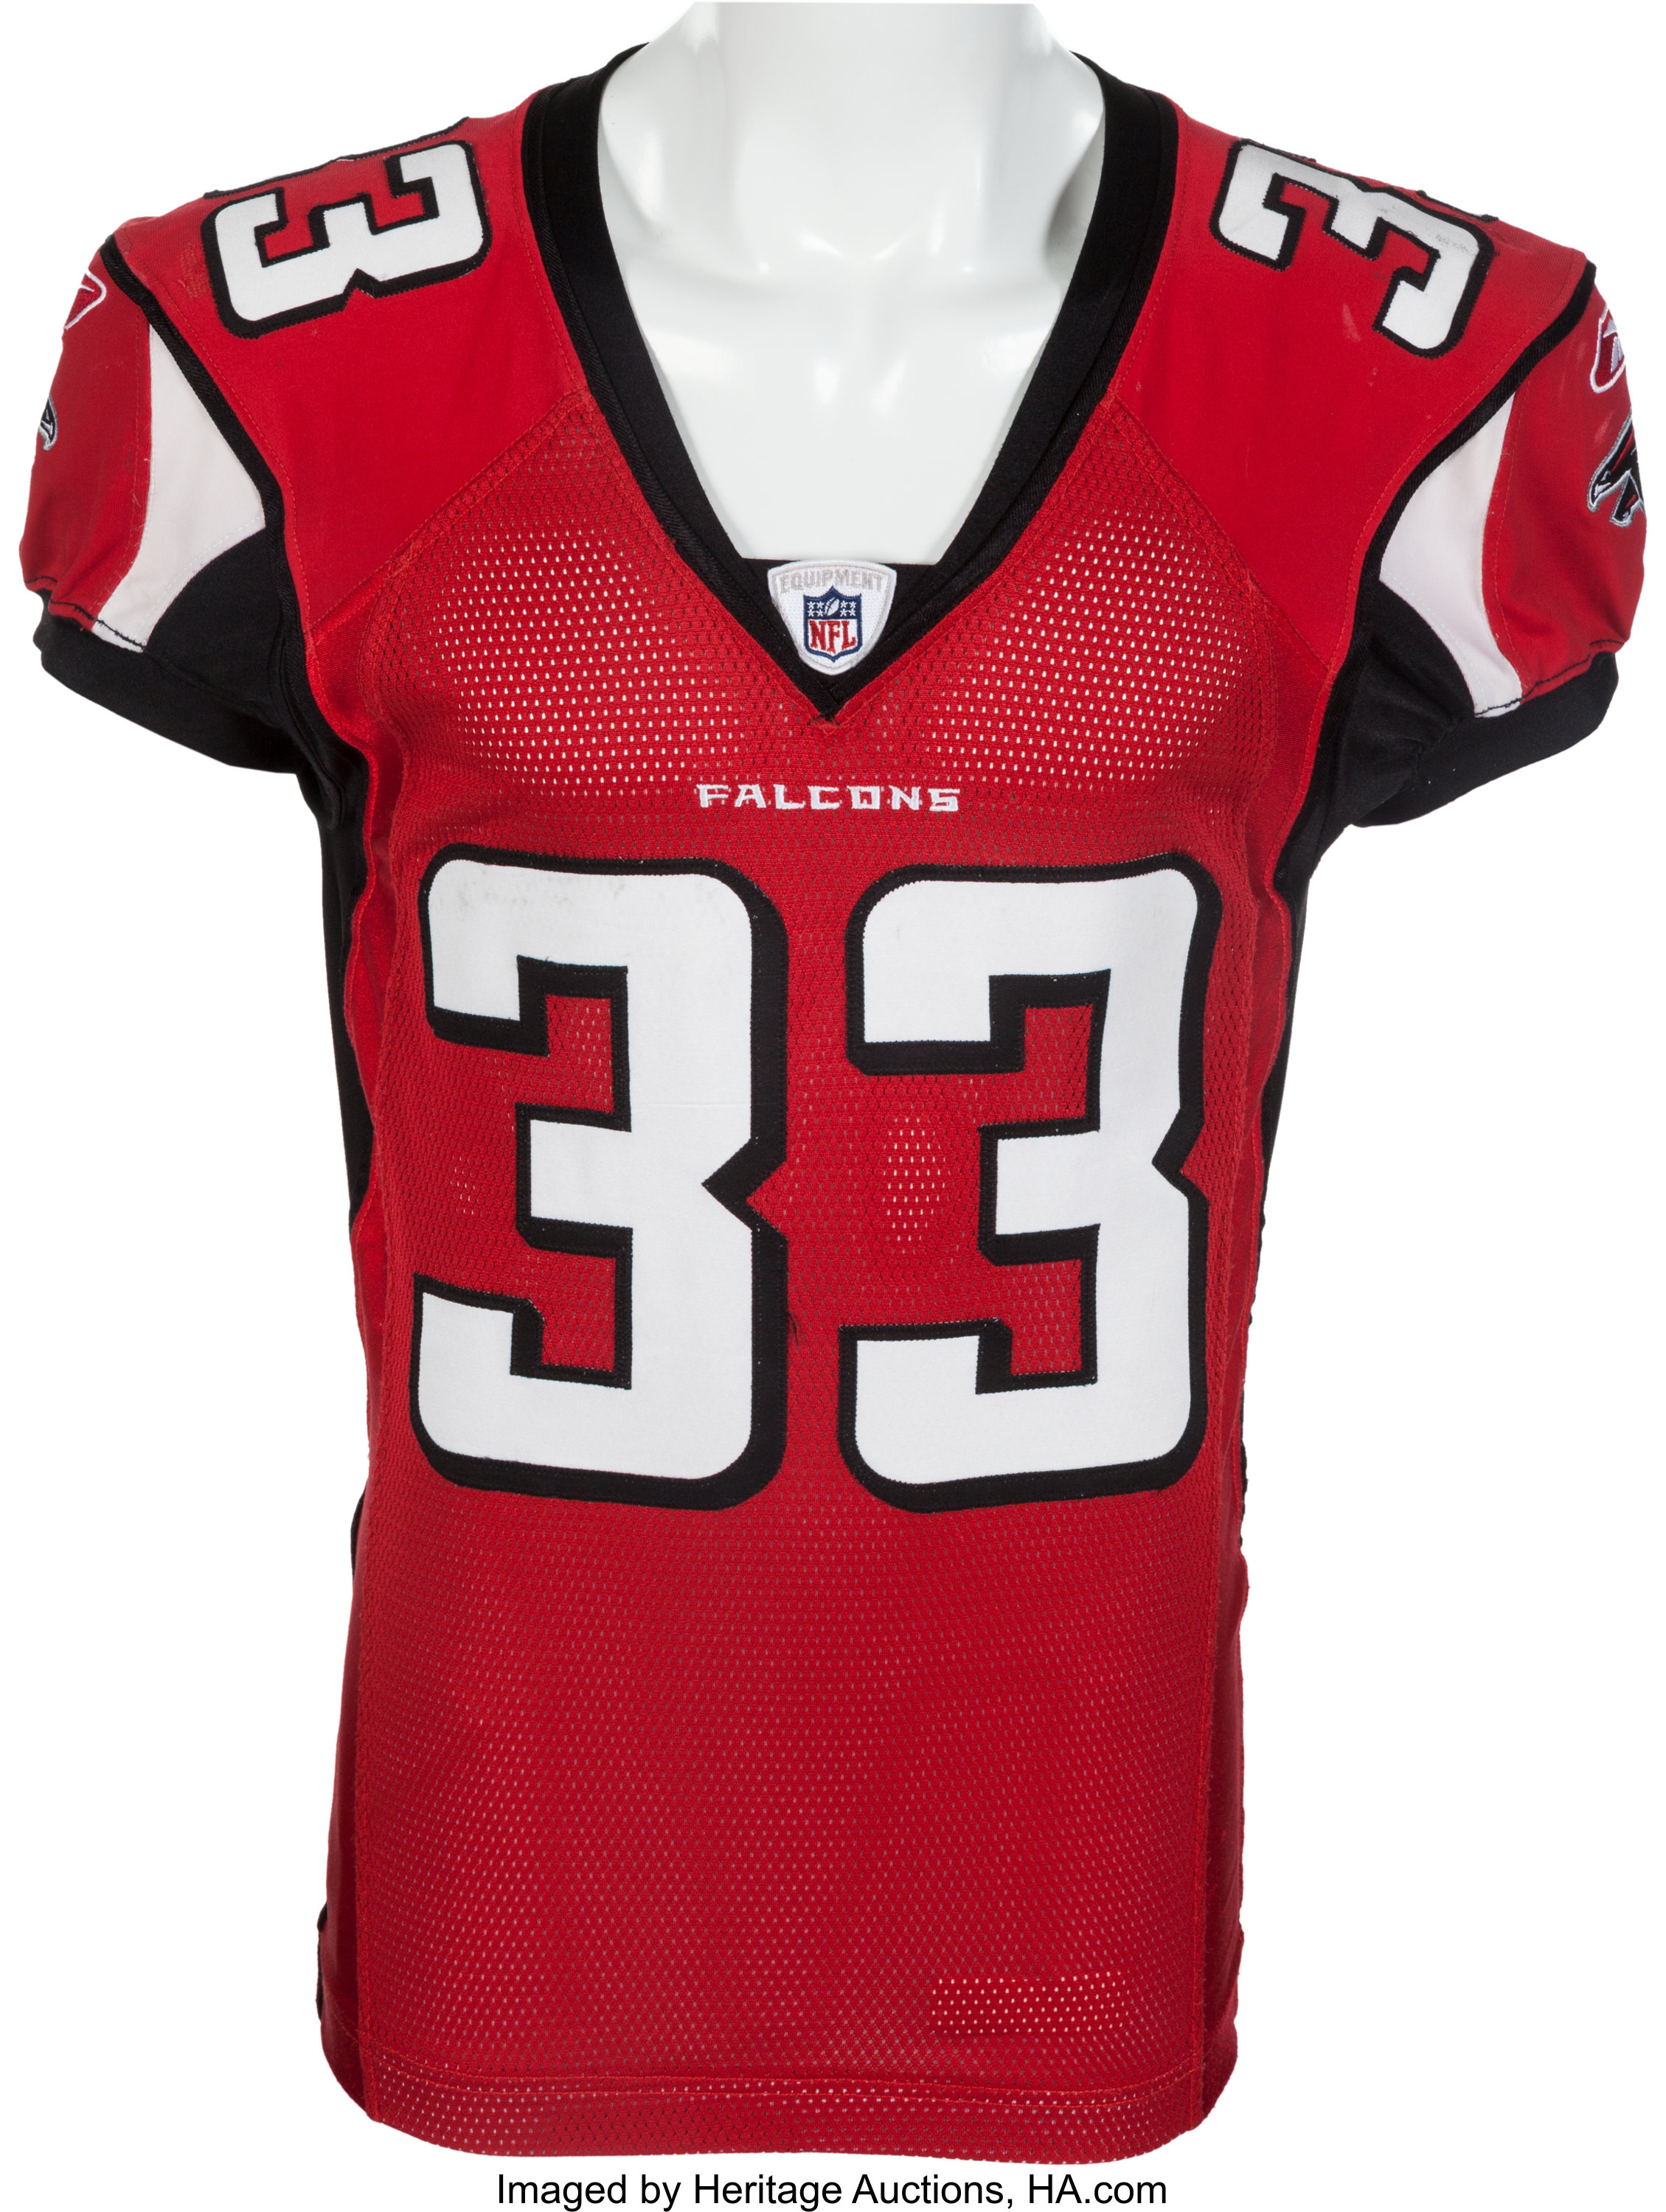 finest selection f3932 d8350 2007 Michael Turner Game Worn Atlanta Falcons Jersey - Multiple | Lot  #82274 | Heritage Auctions